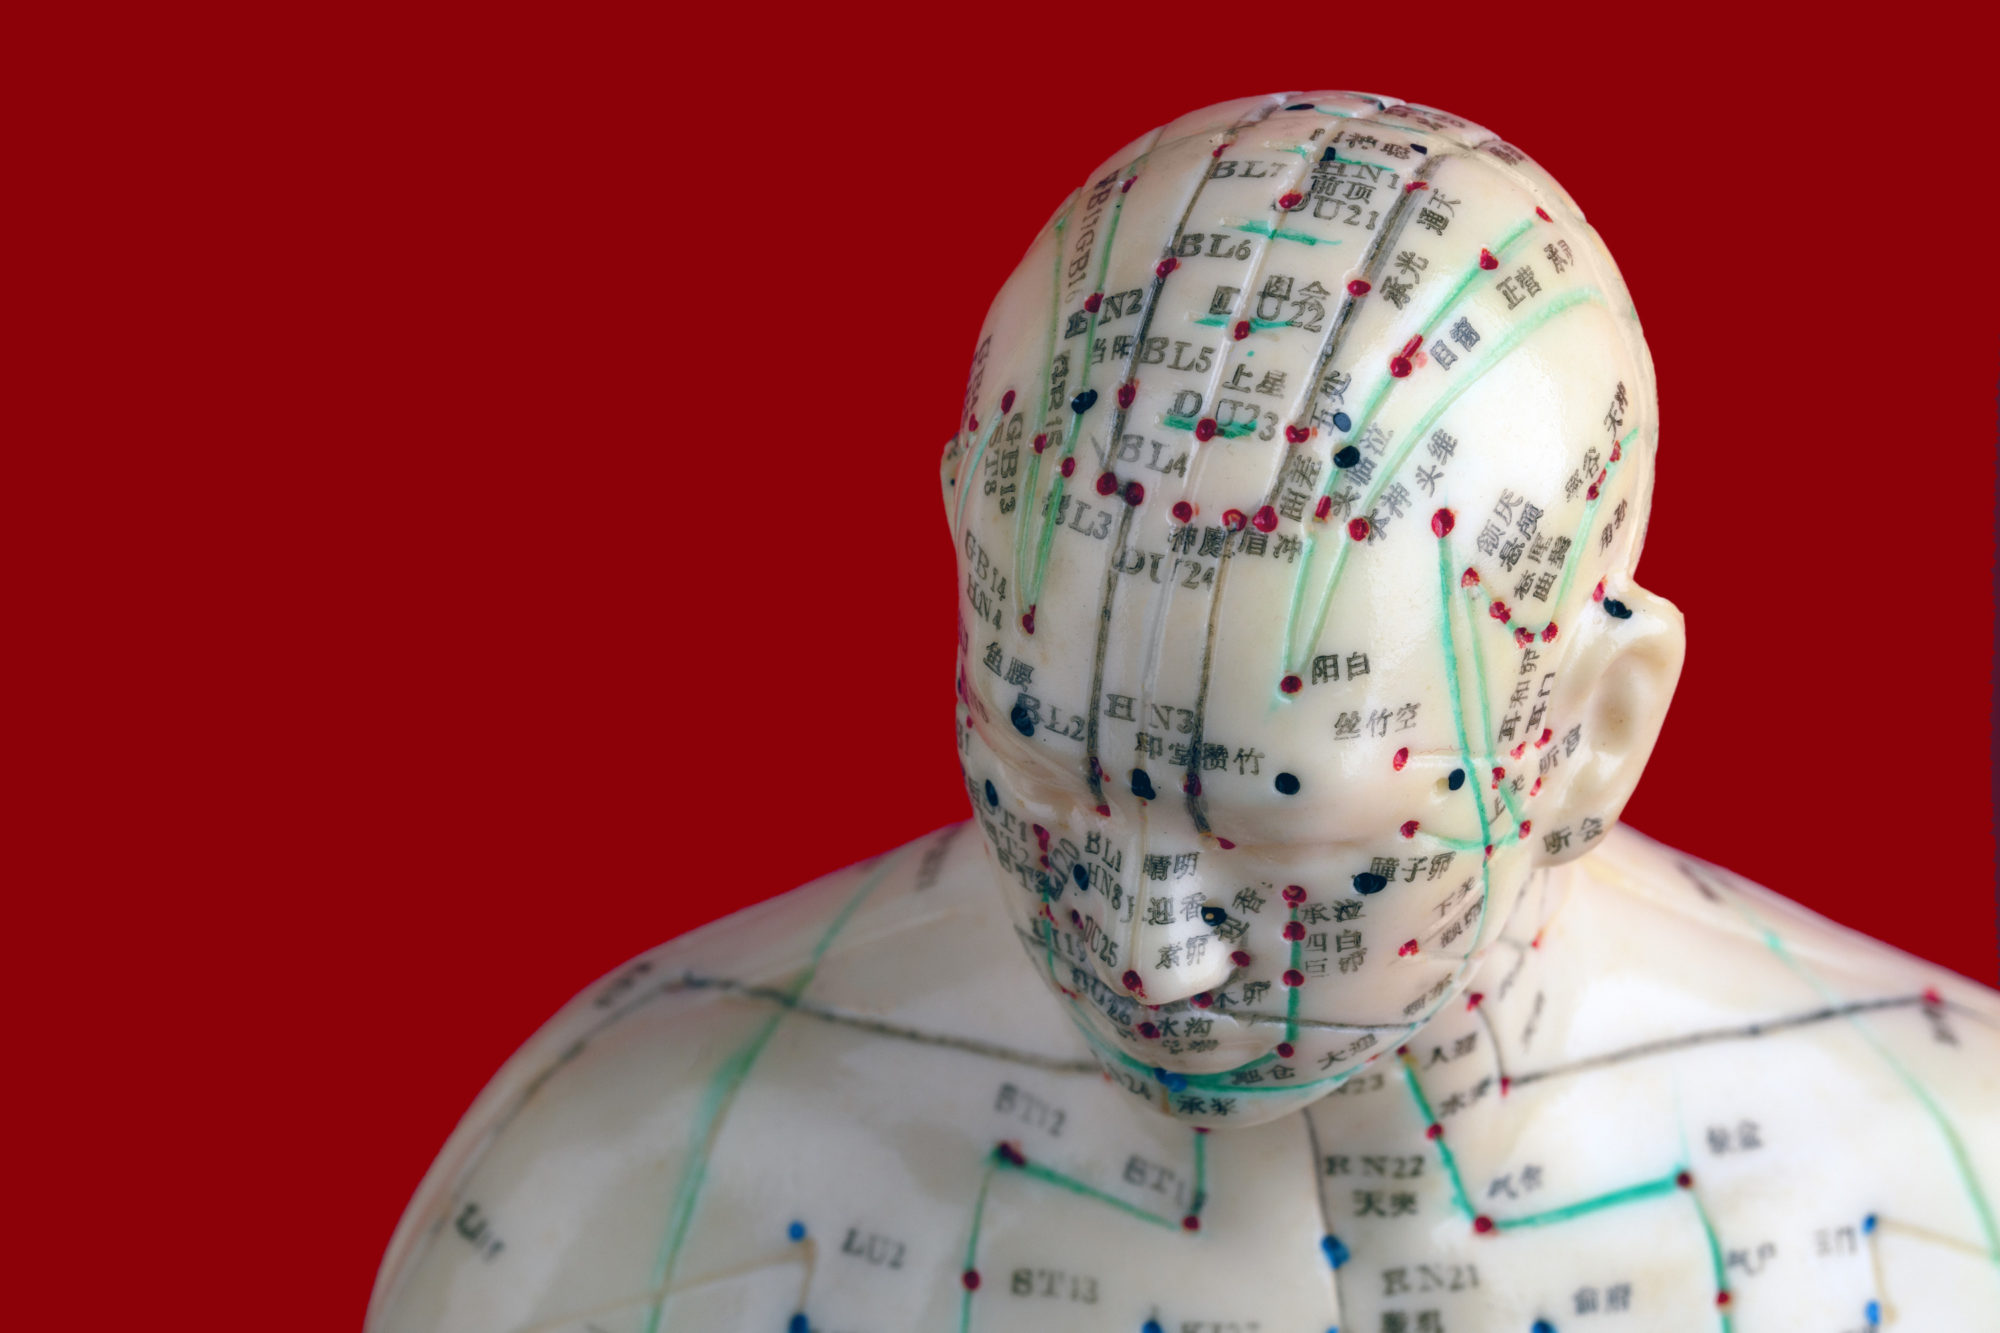 acupuncture model head